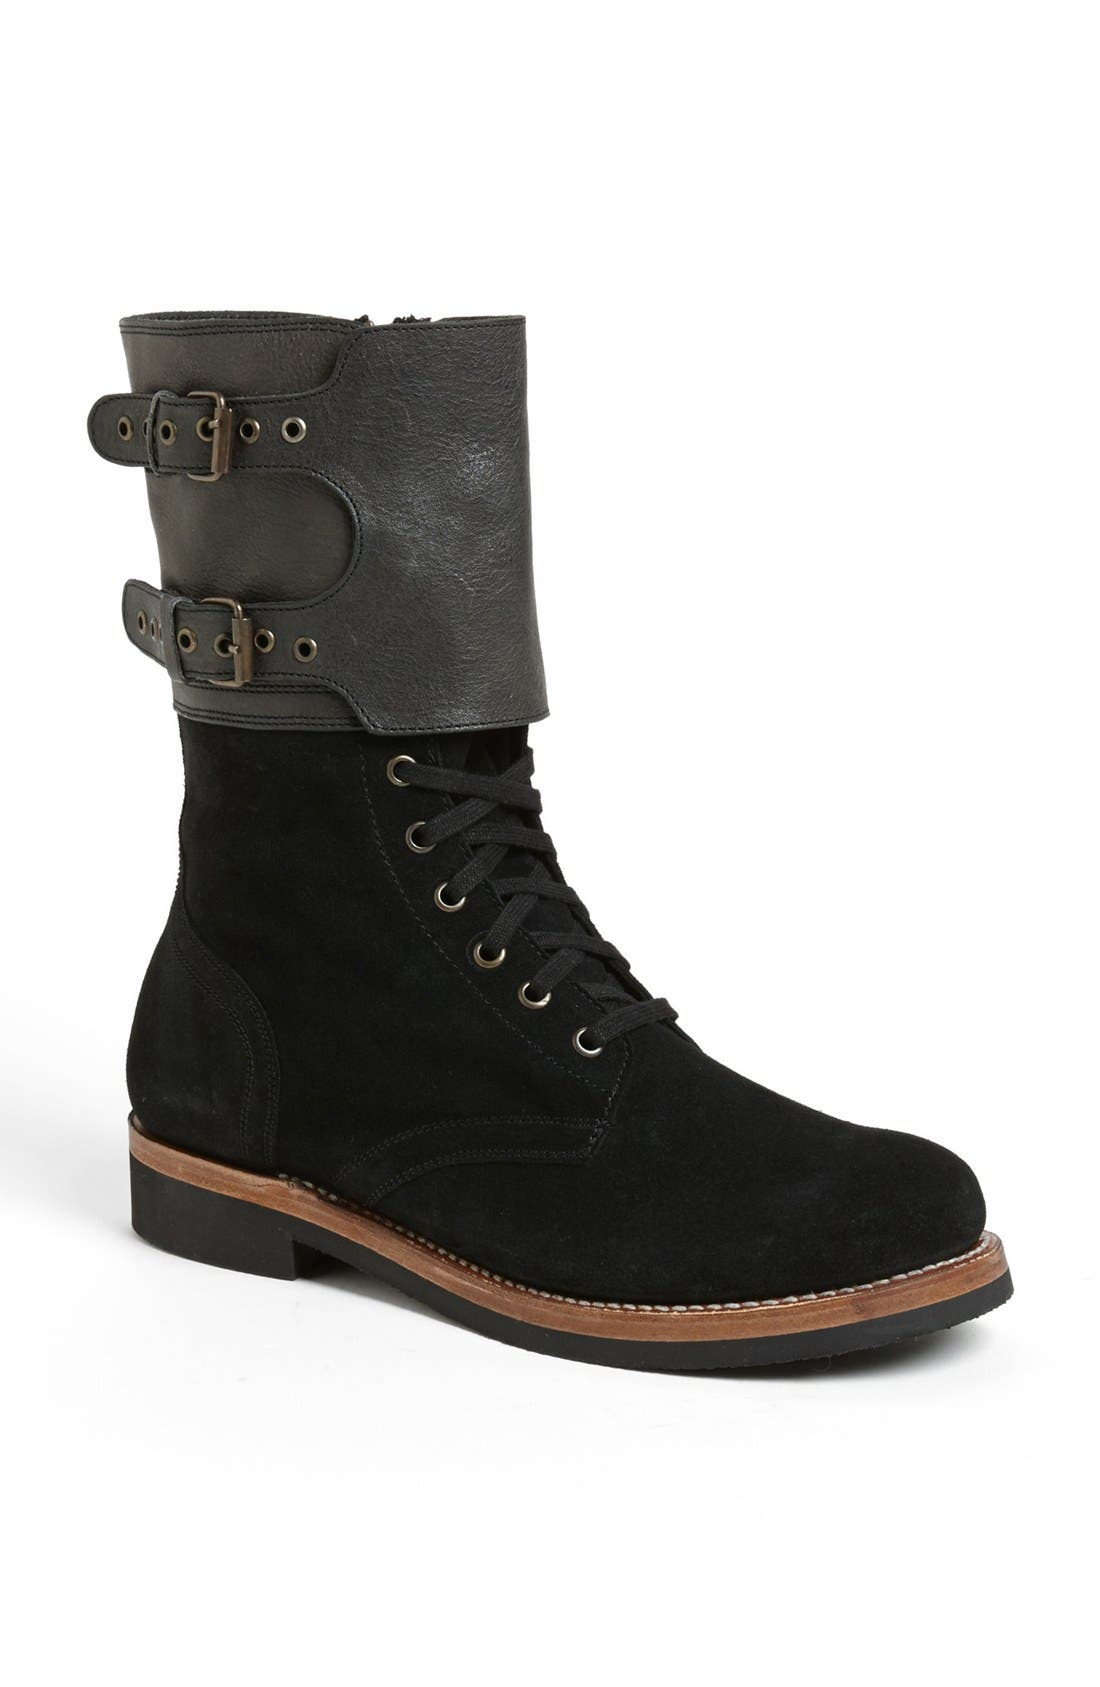 Main Image - J.D. Fisk 'Inverness' Round Toe Boot